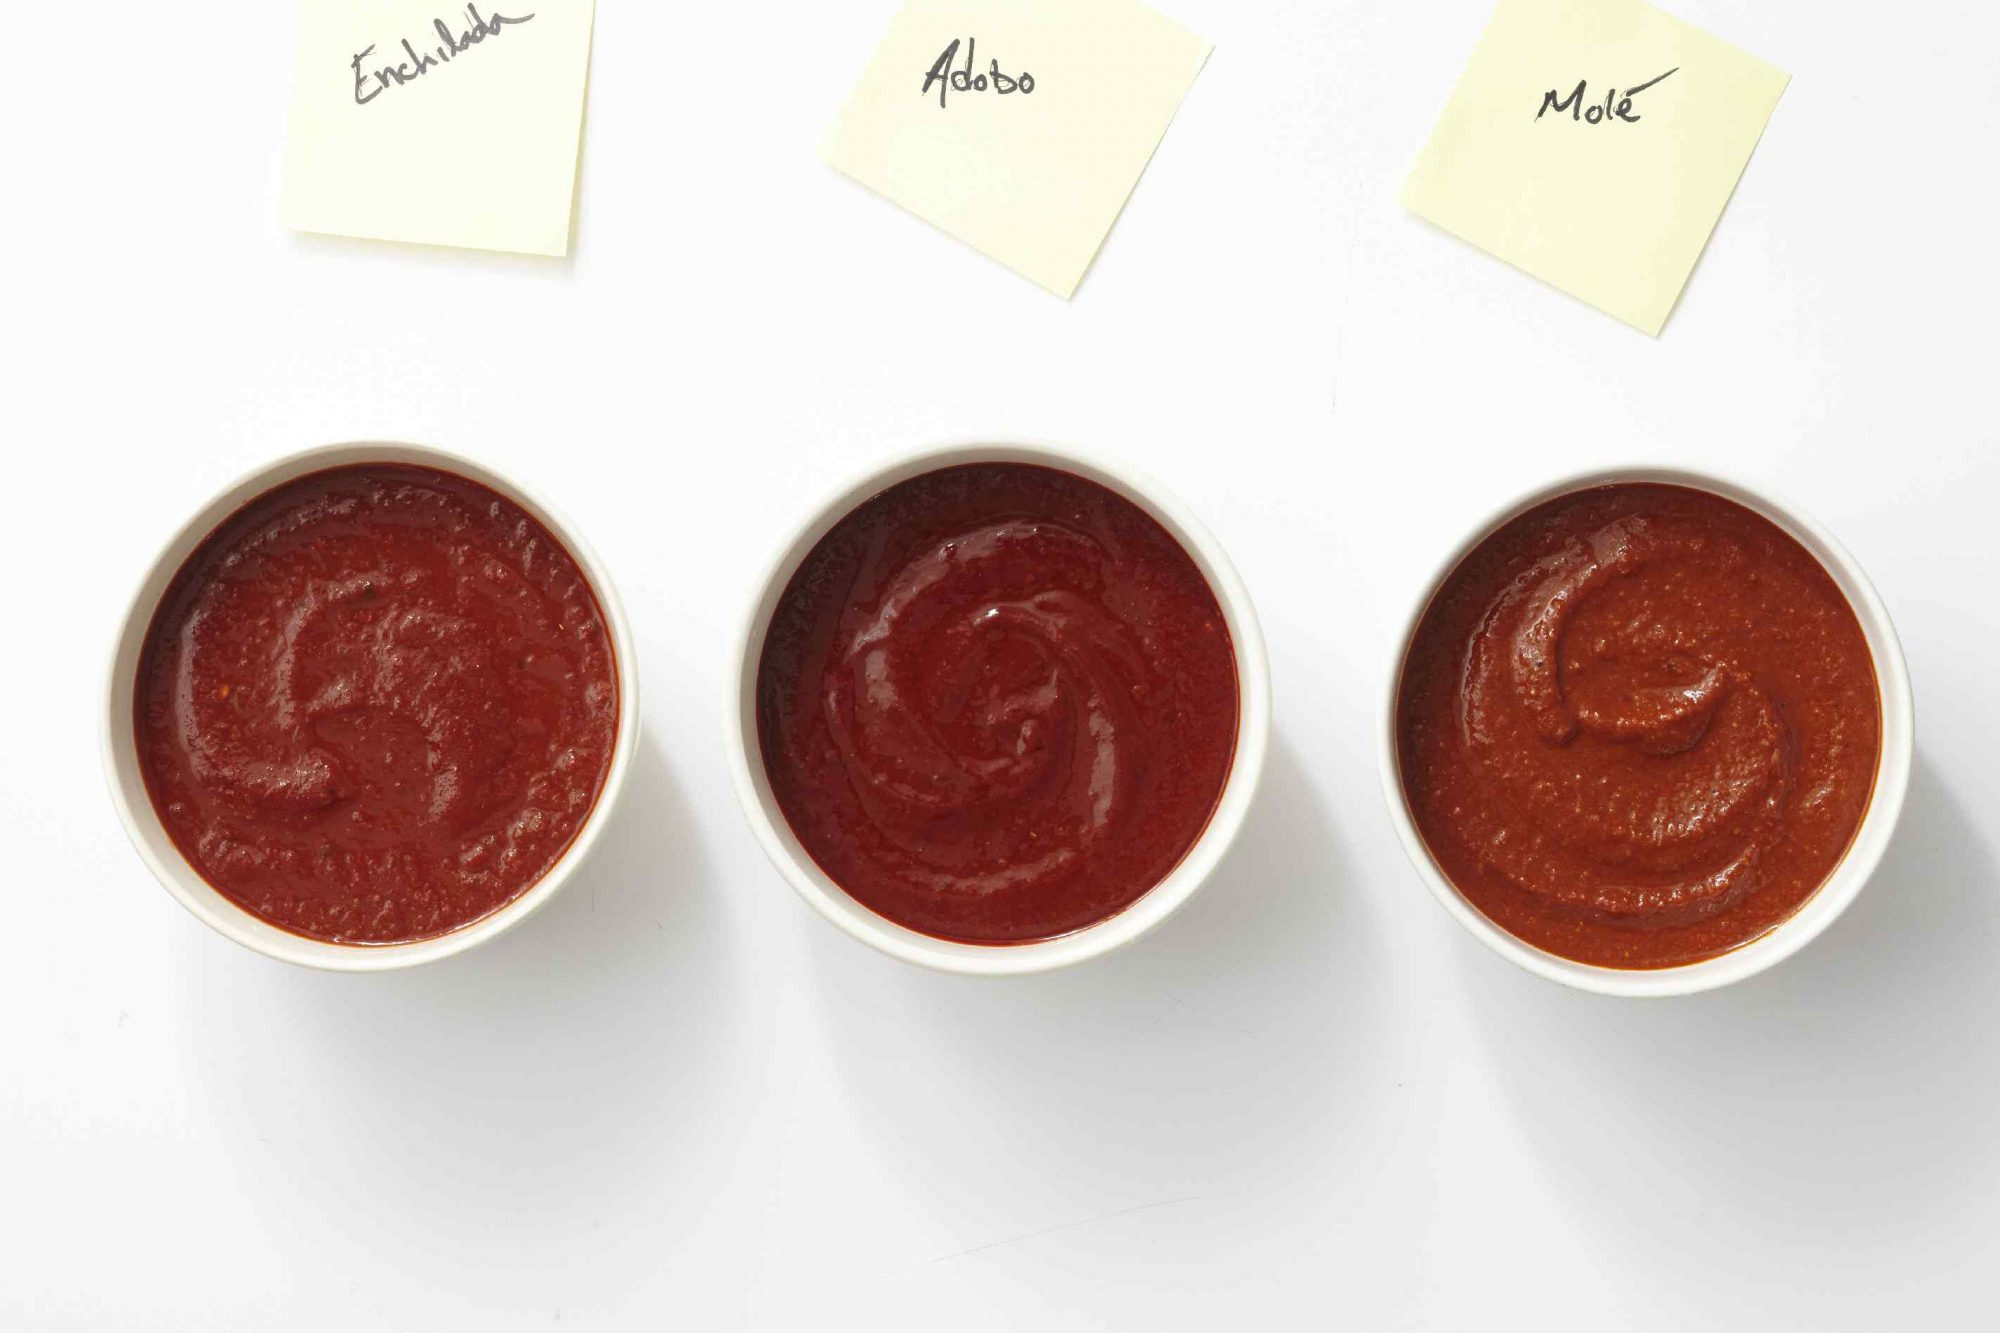 Enchilada sauce, adobo sauce, and mole sauce in bowls